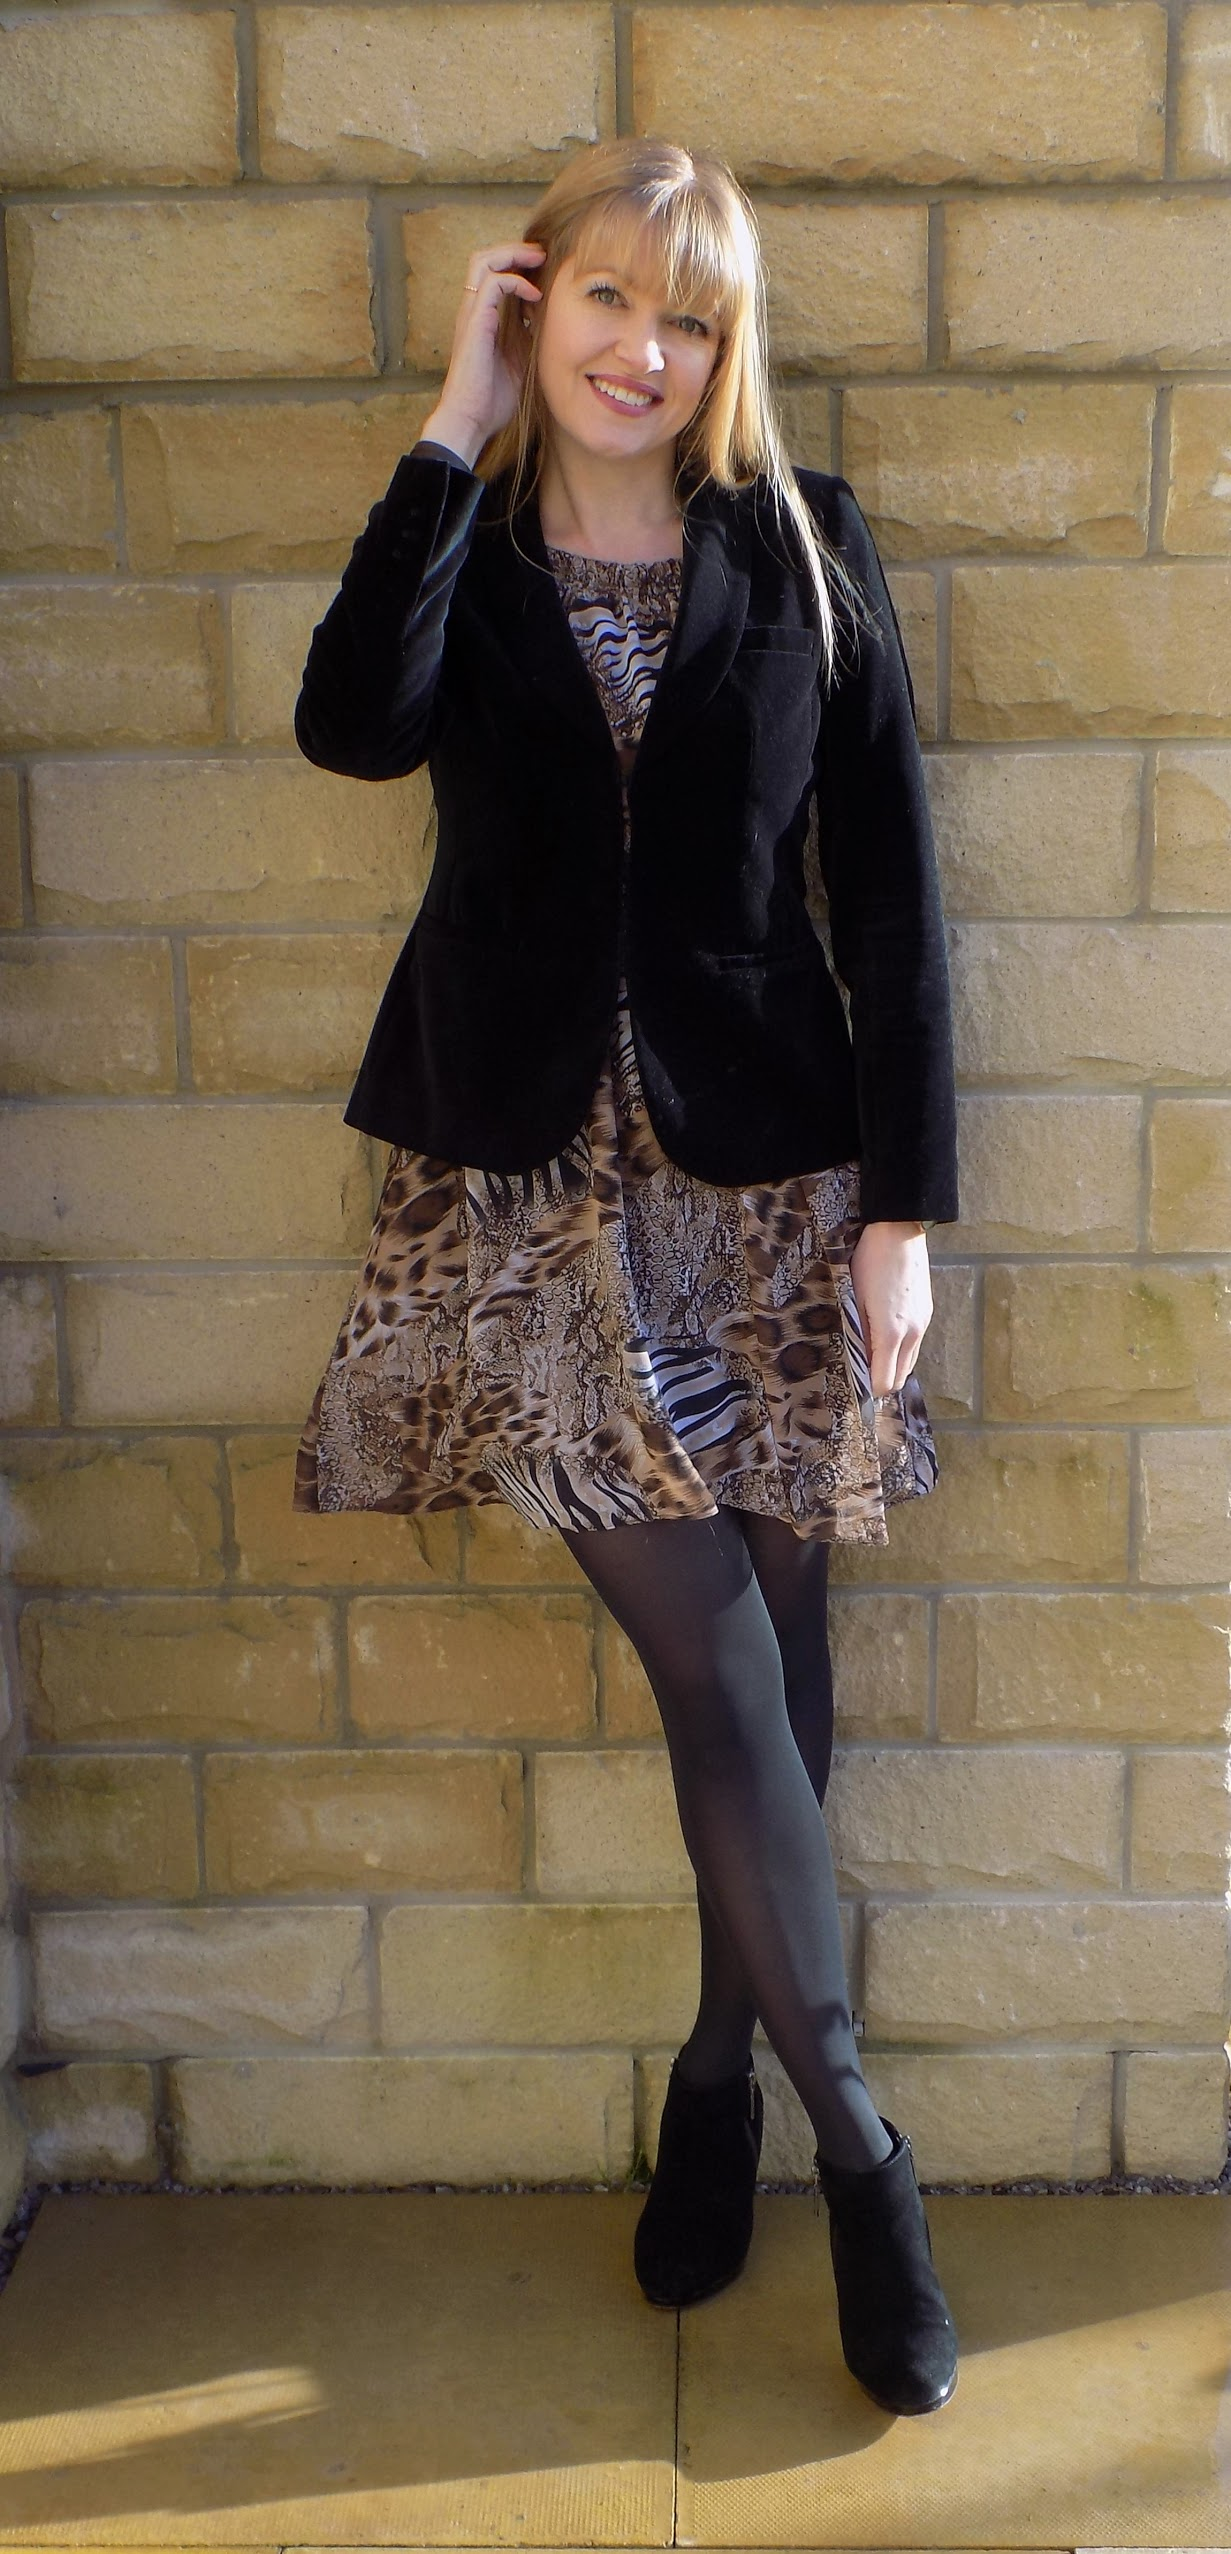 How to wear an animal print dress in winter